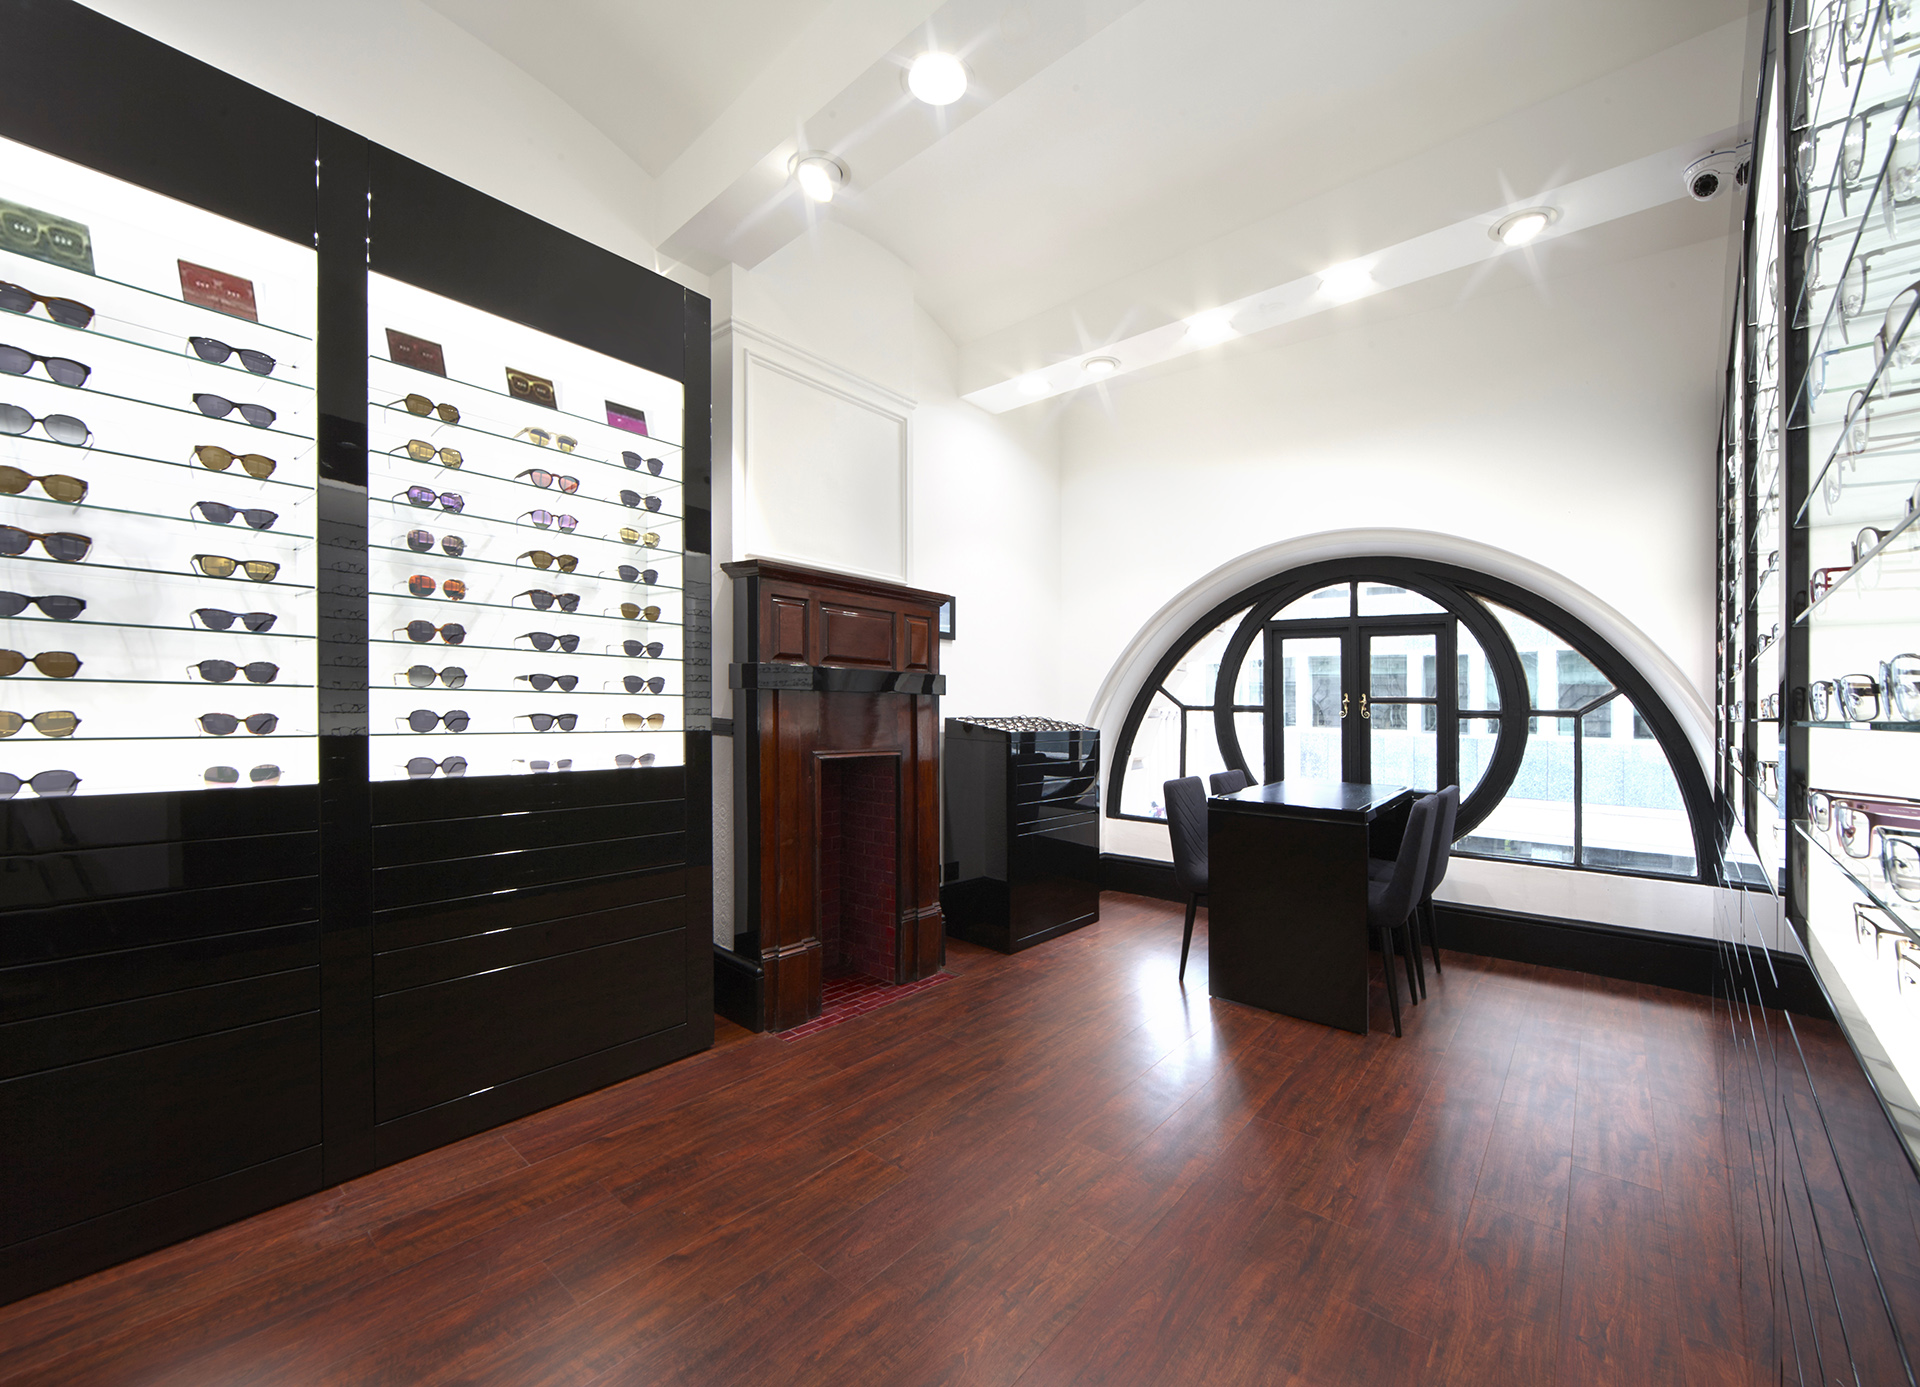 Shop floor of Tom Davies Bespoke Opticians in Royal Exchange, City of London